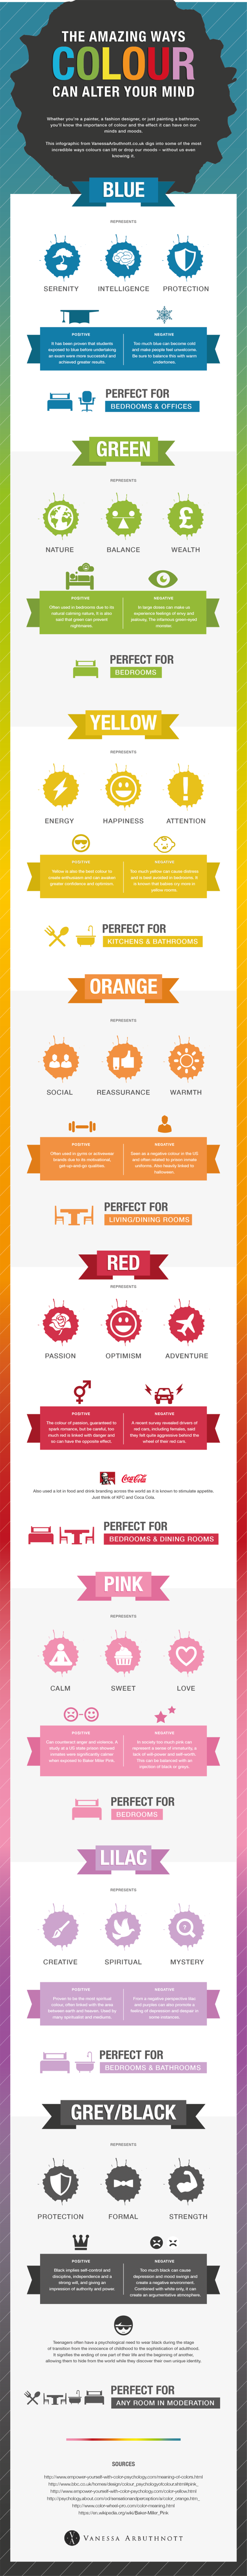 The Amazing Ways Colour Can Alter Your Mind #Infographic